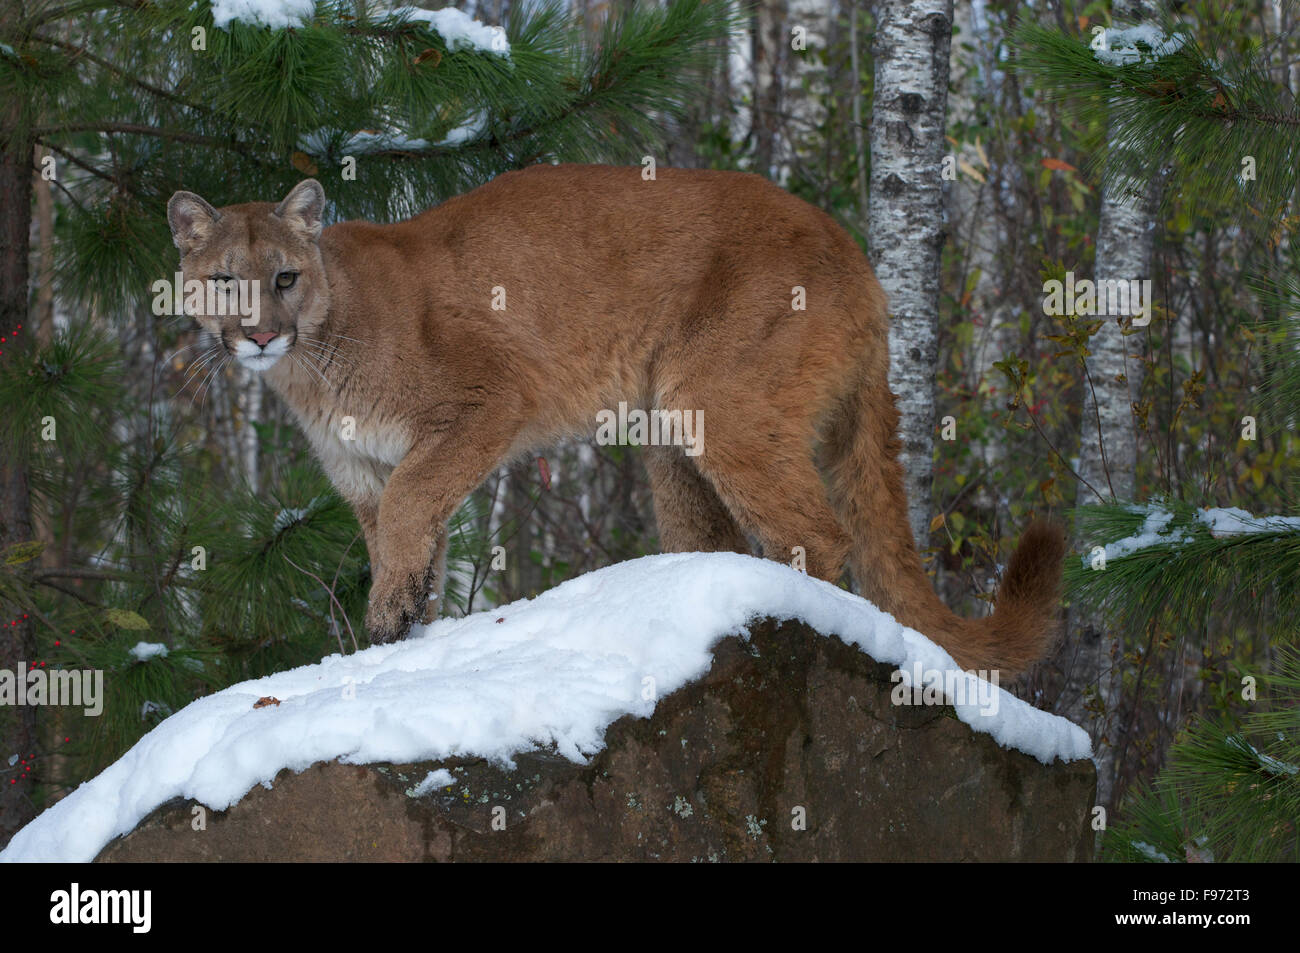 Mountain Lion/Cougar standing on snowcovered boulder in boreal forest;  (Puma concolor) North America, winter. - Stock Image